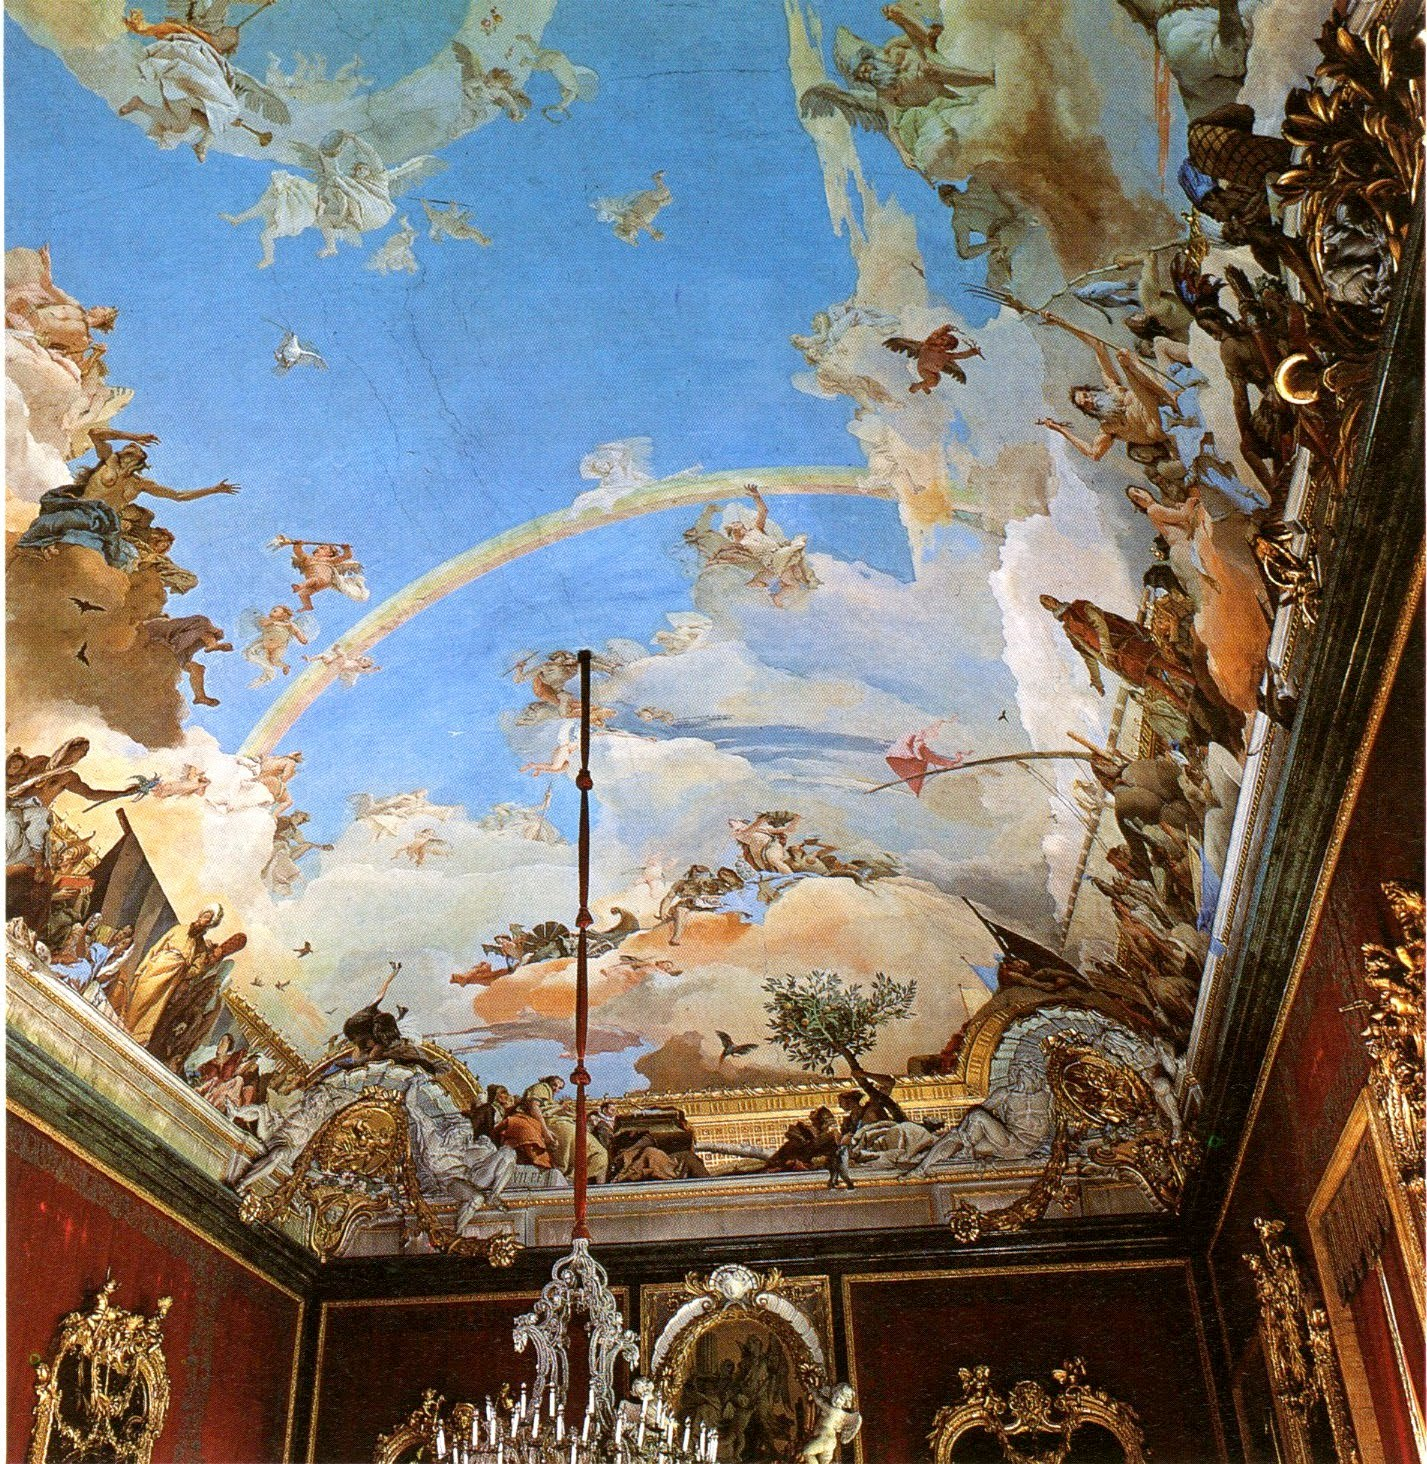 ceilings with mural art - photo #27